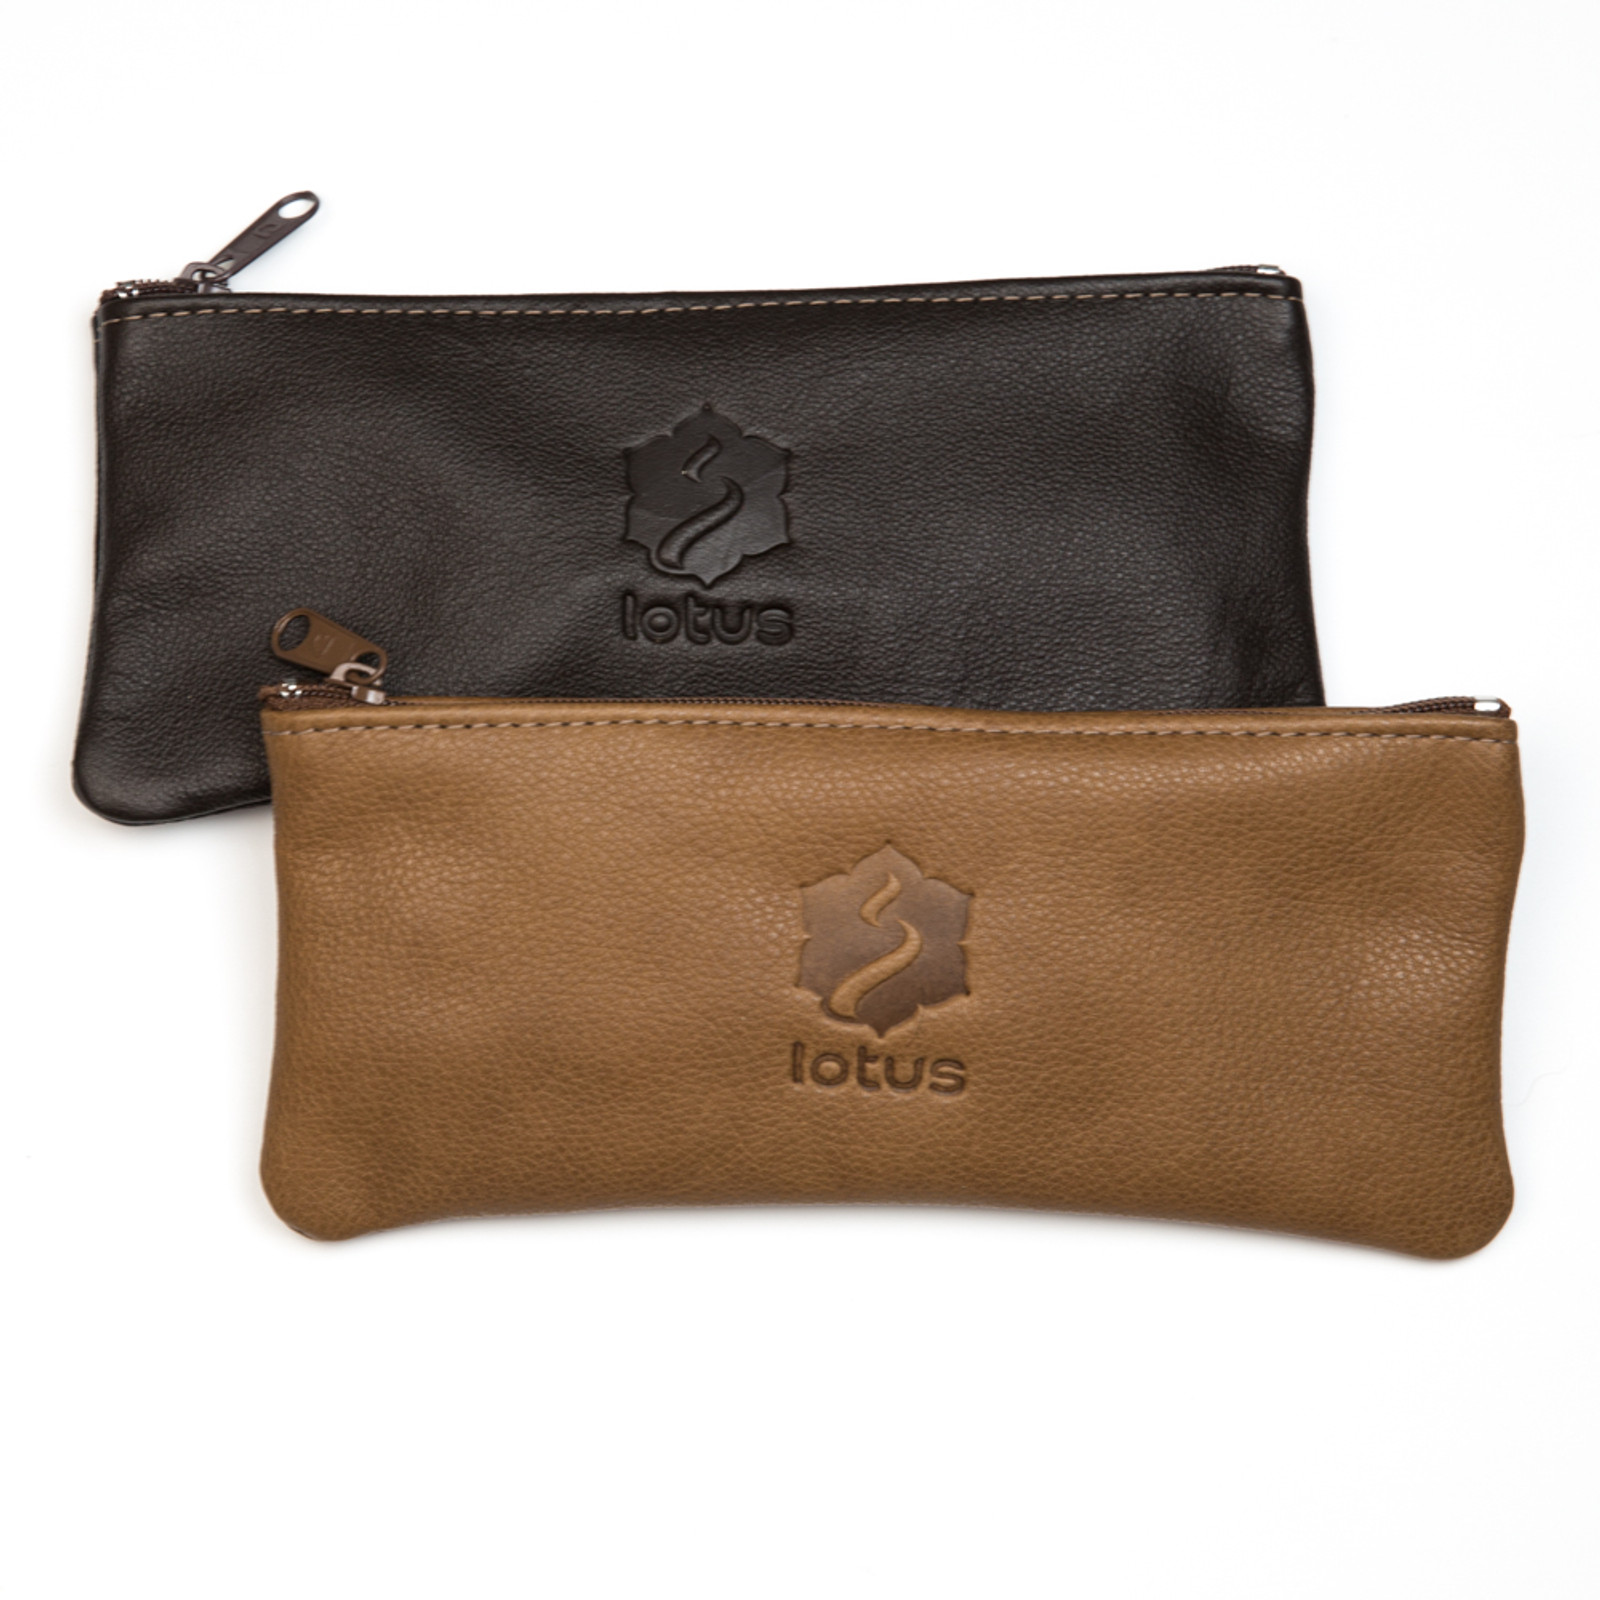 Brown and tan leather carry bags